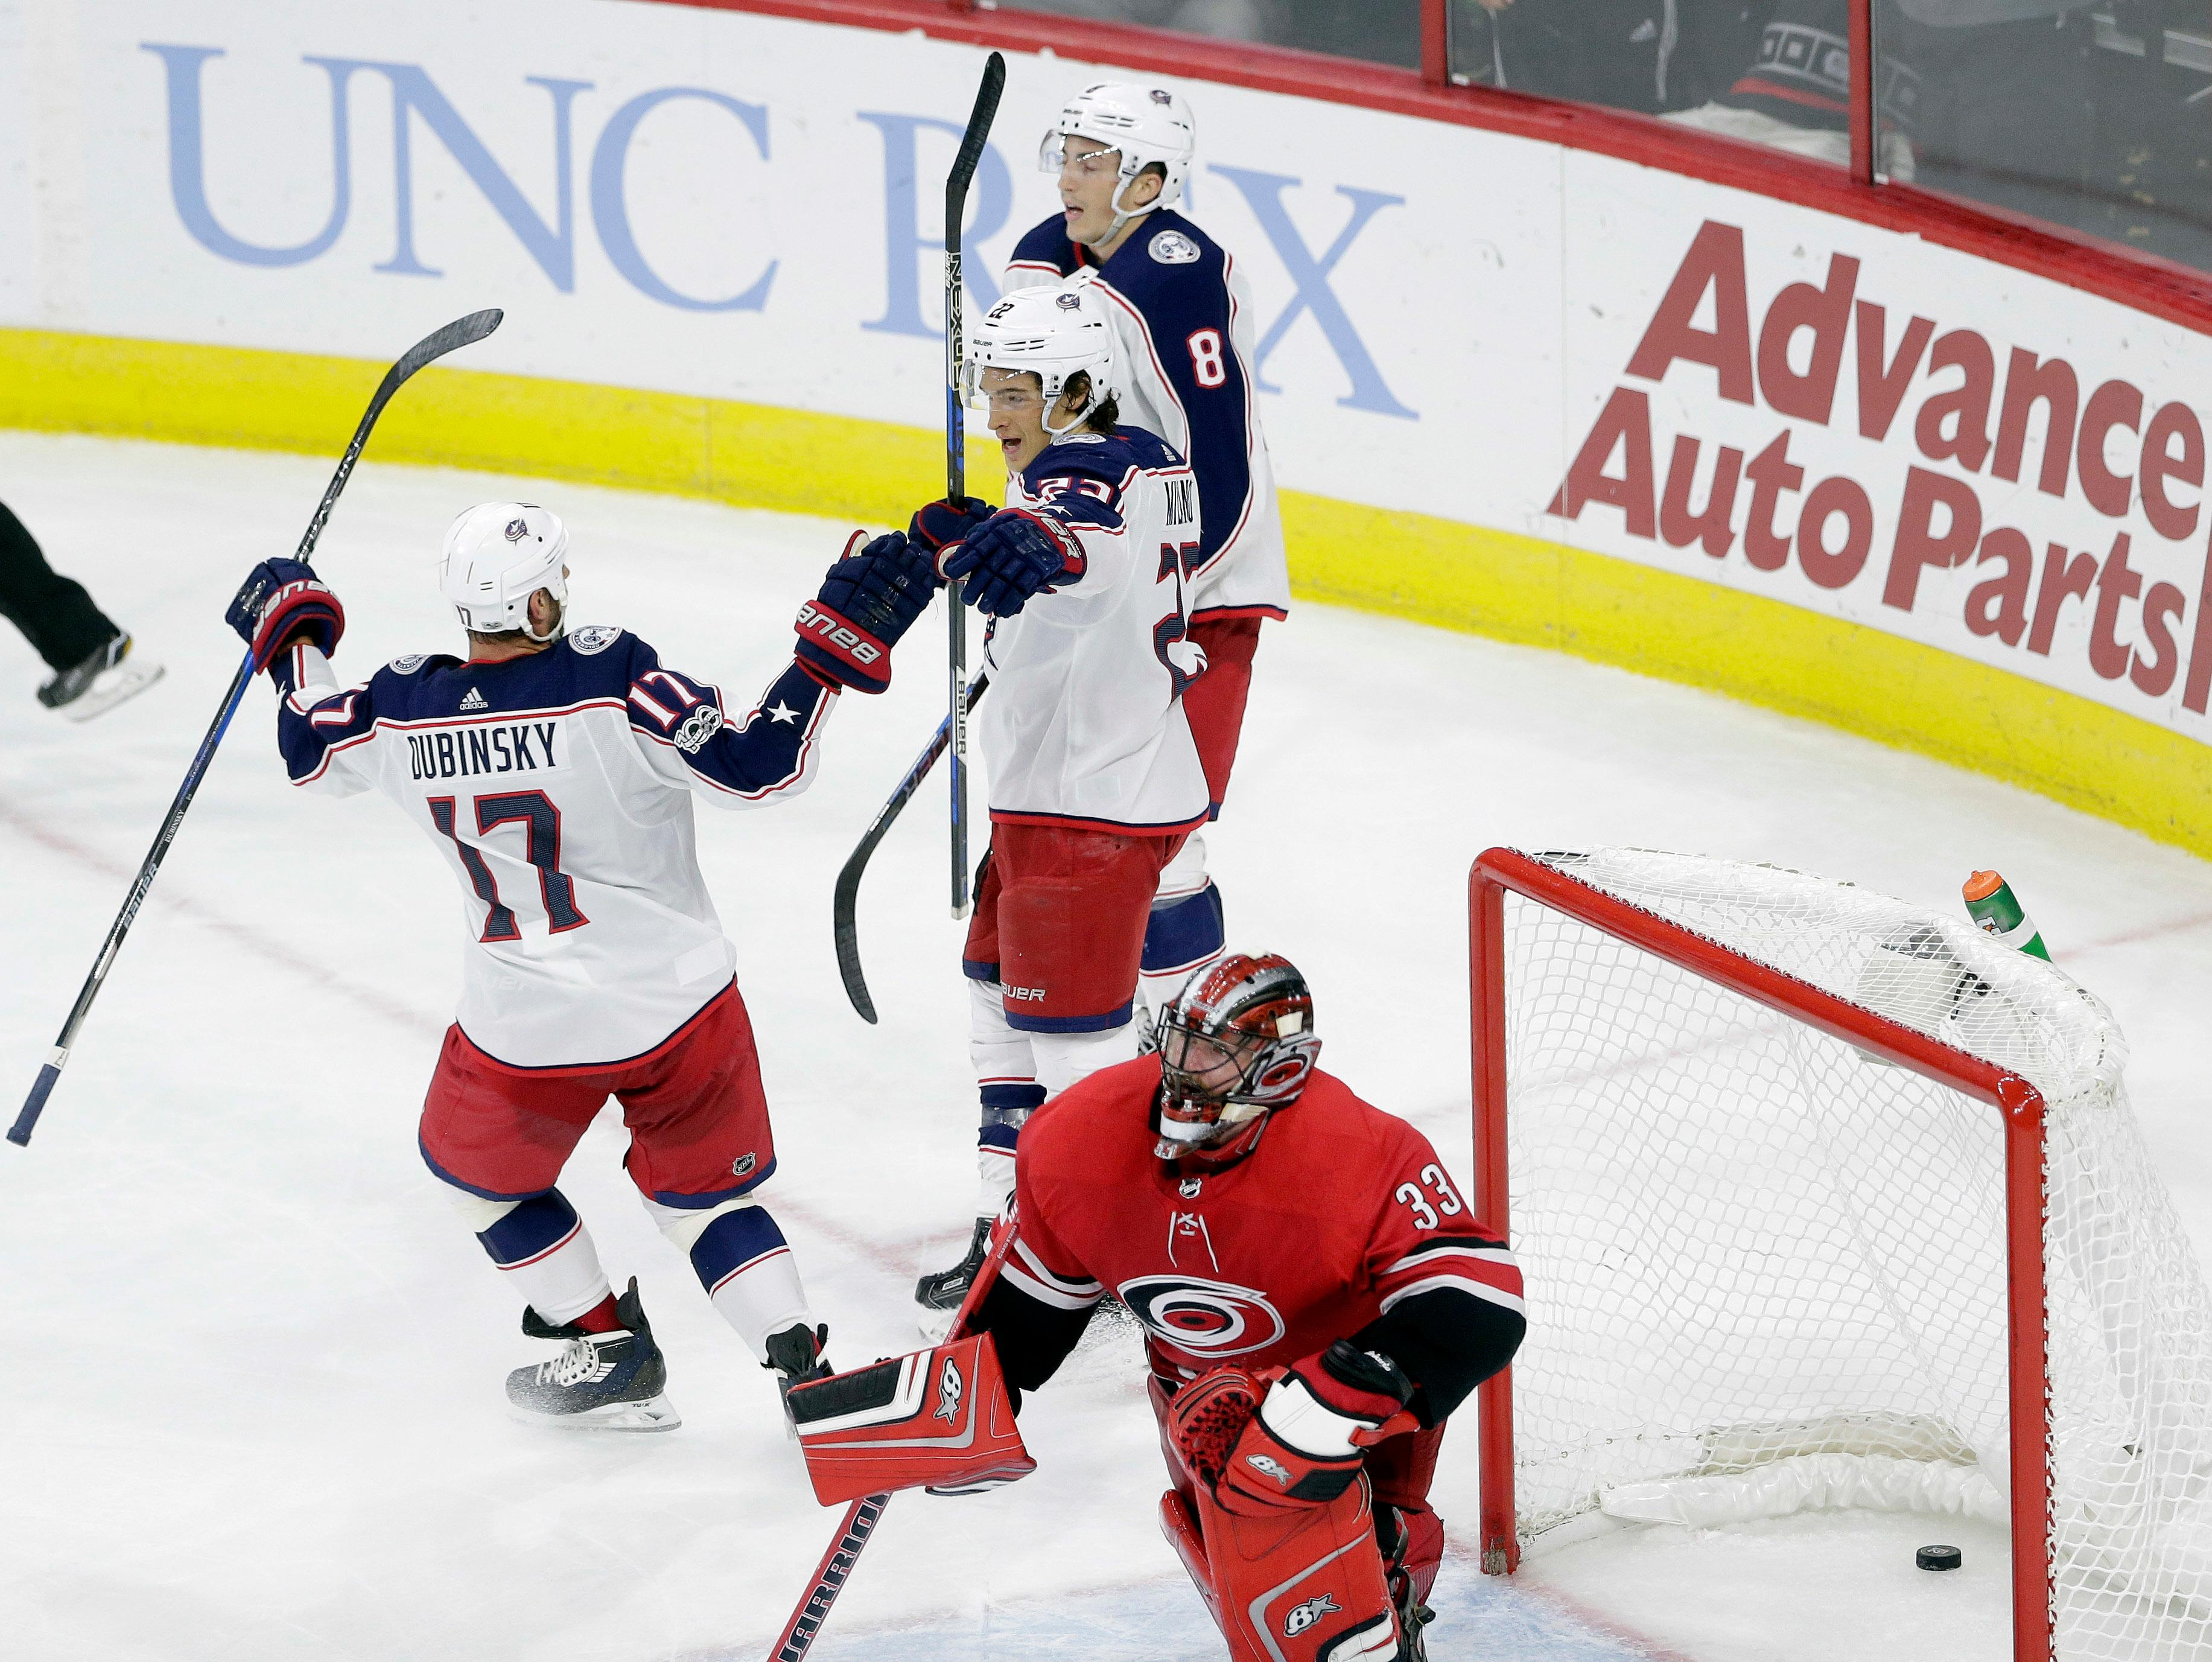 Columbus Blue Jackets' Sonny Milano (22) celebrates his game-winning goal with Brandon Dubinsky (17) and Zach Werenski (8) as Carolina Hurricanes goalie Scott Darling (33) reacts during overtime in an NHL hockey game in Raleigh, N.C., Tuesday, Oct. 10, 2017. Columbus won 2-1 in overtime. (AP Photo/Gerry Broome)